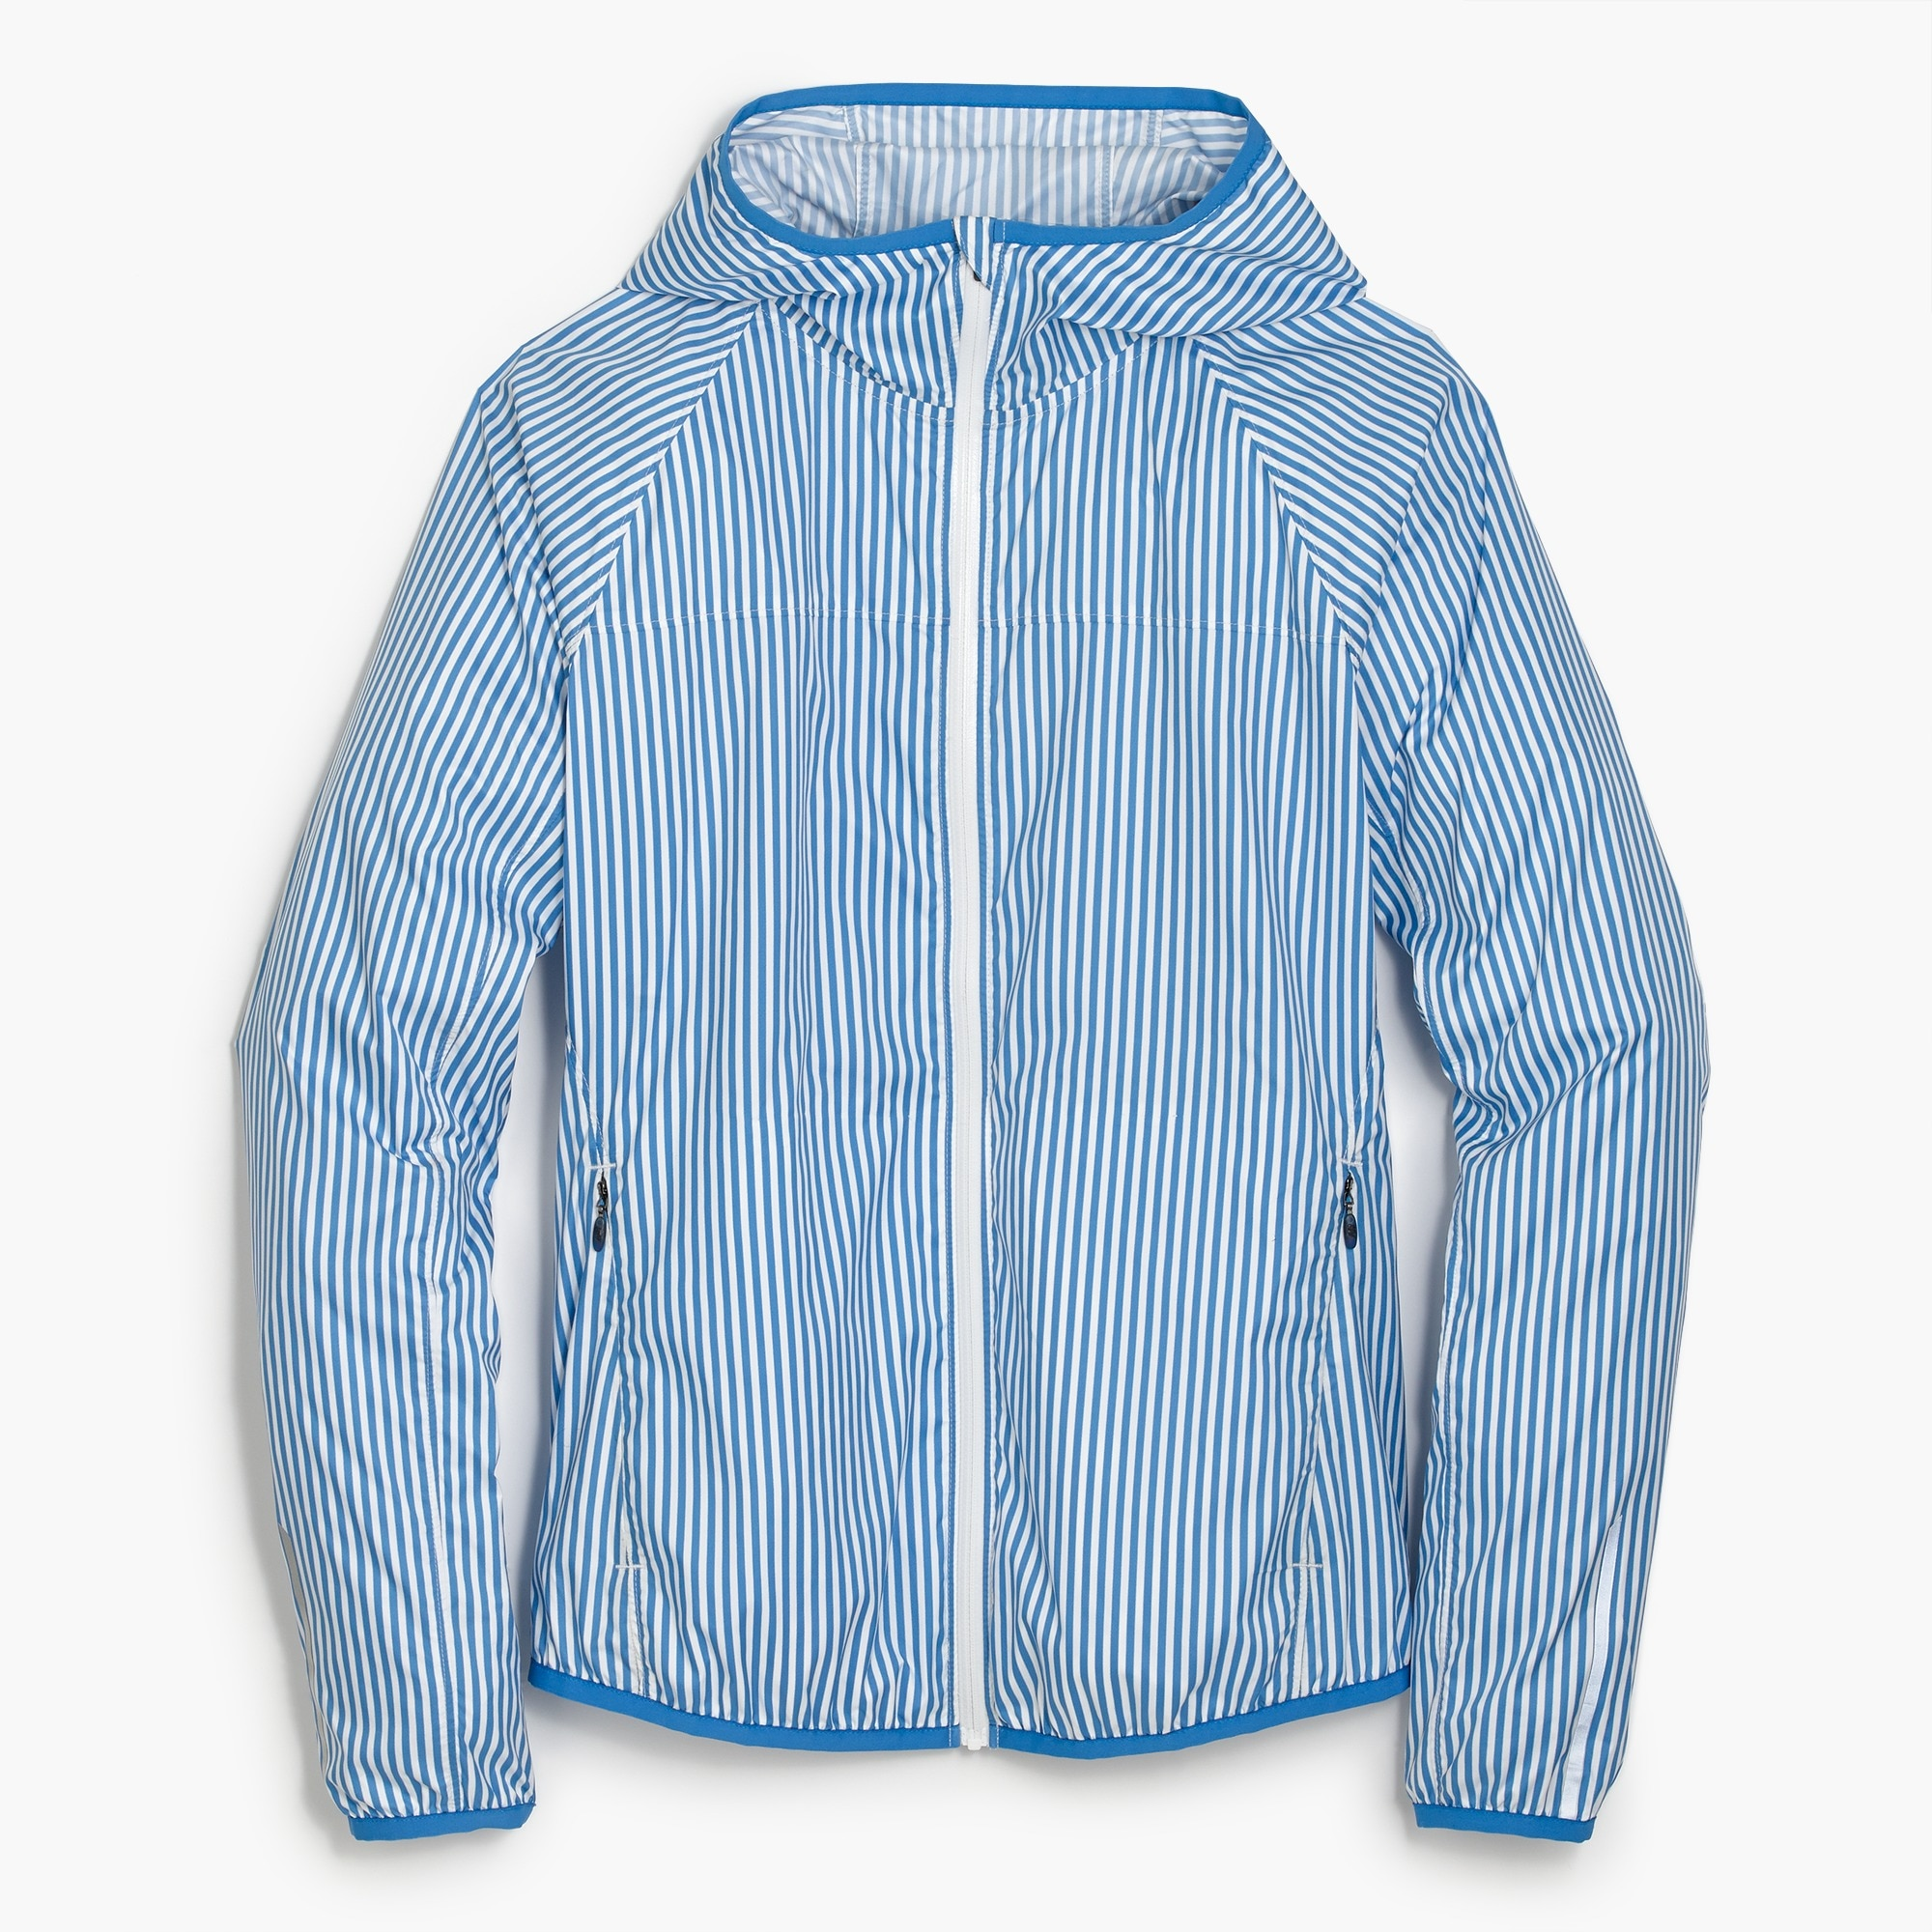 New Balance® for J.Crew windbreaker jacket in stripe